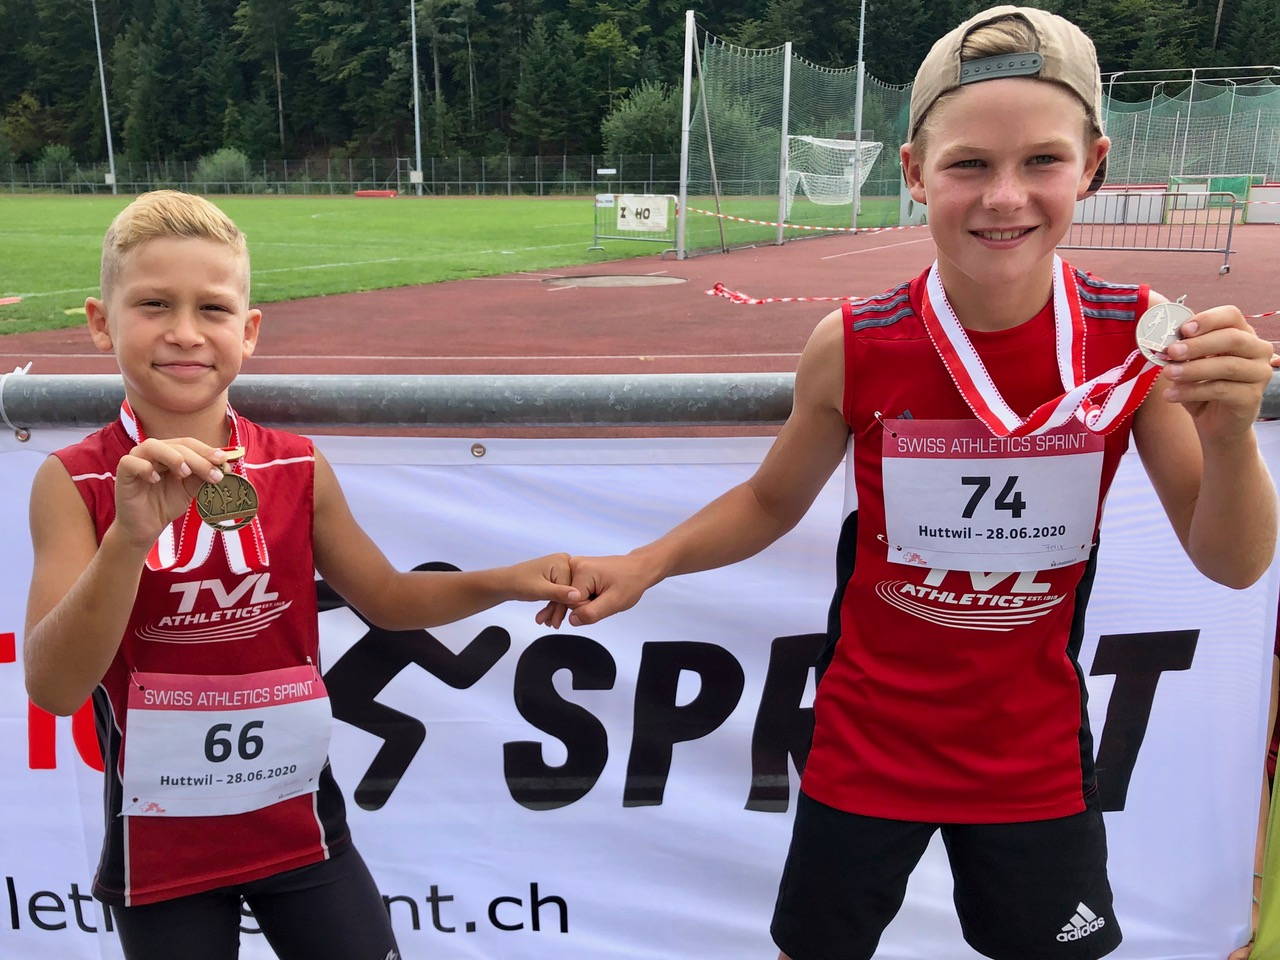 Bericht – Swiss Athletics Sprint Kantonalfinal 2020 Huttwil